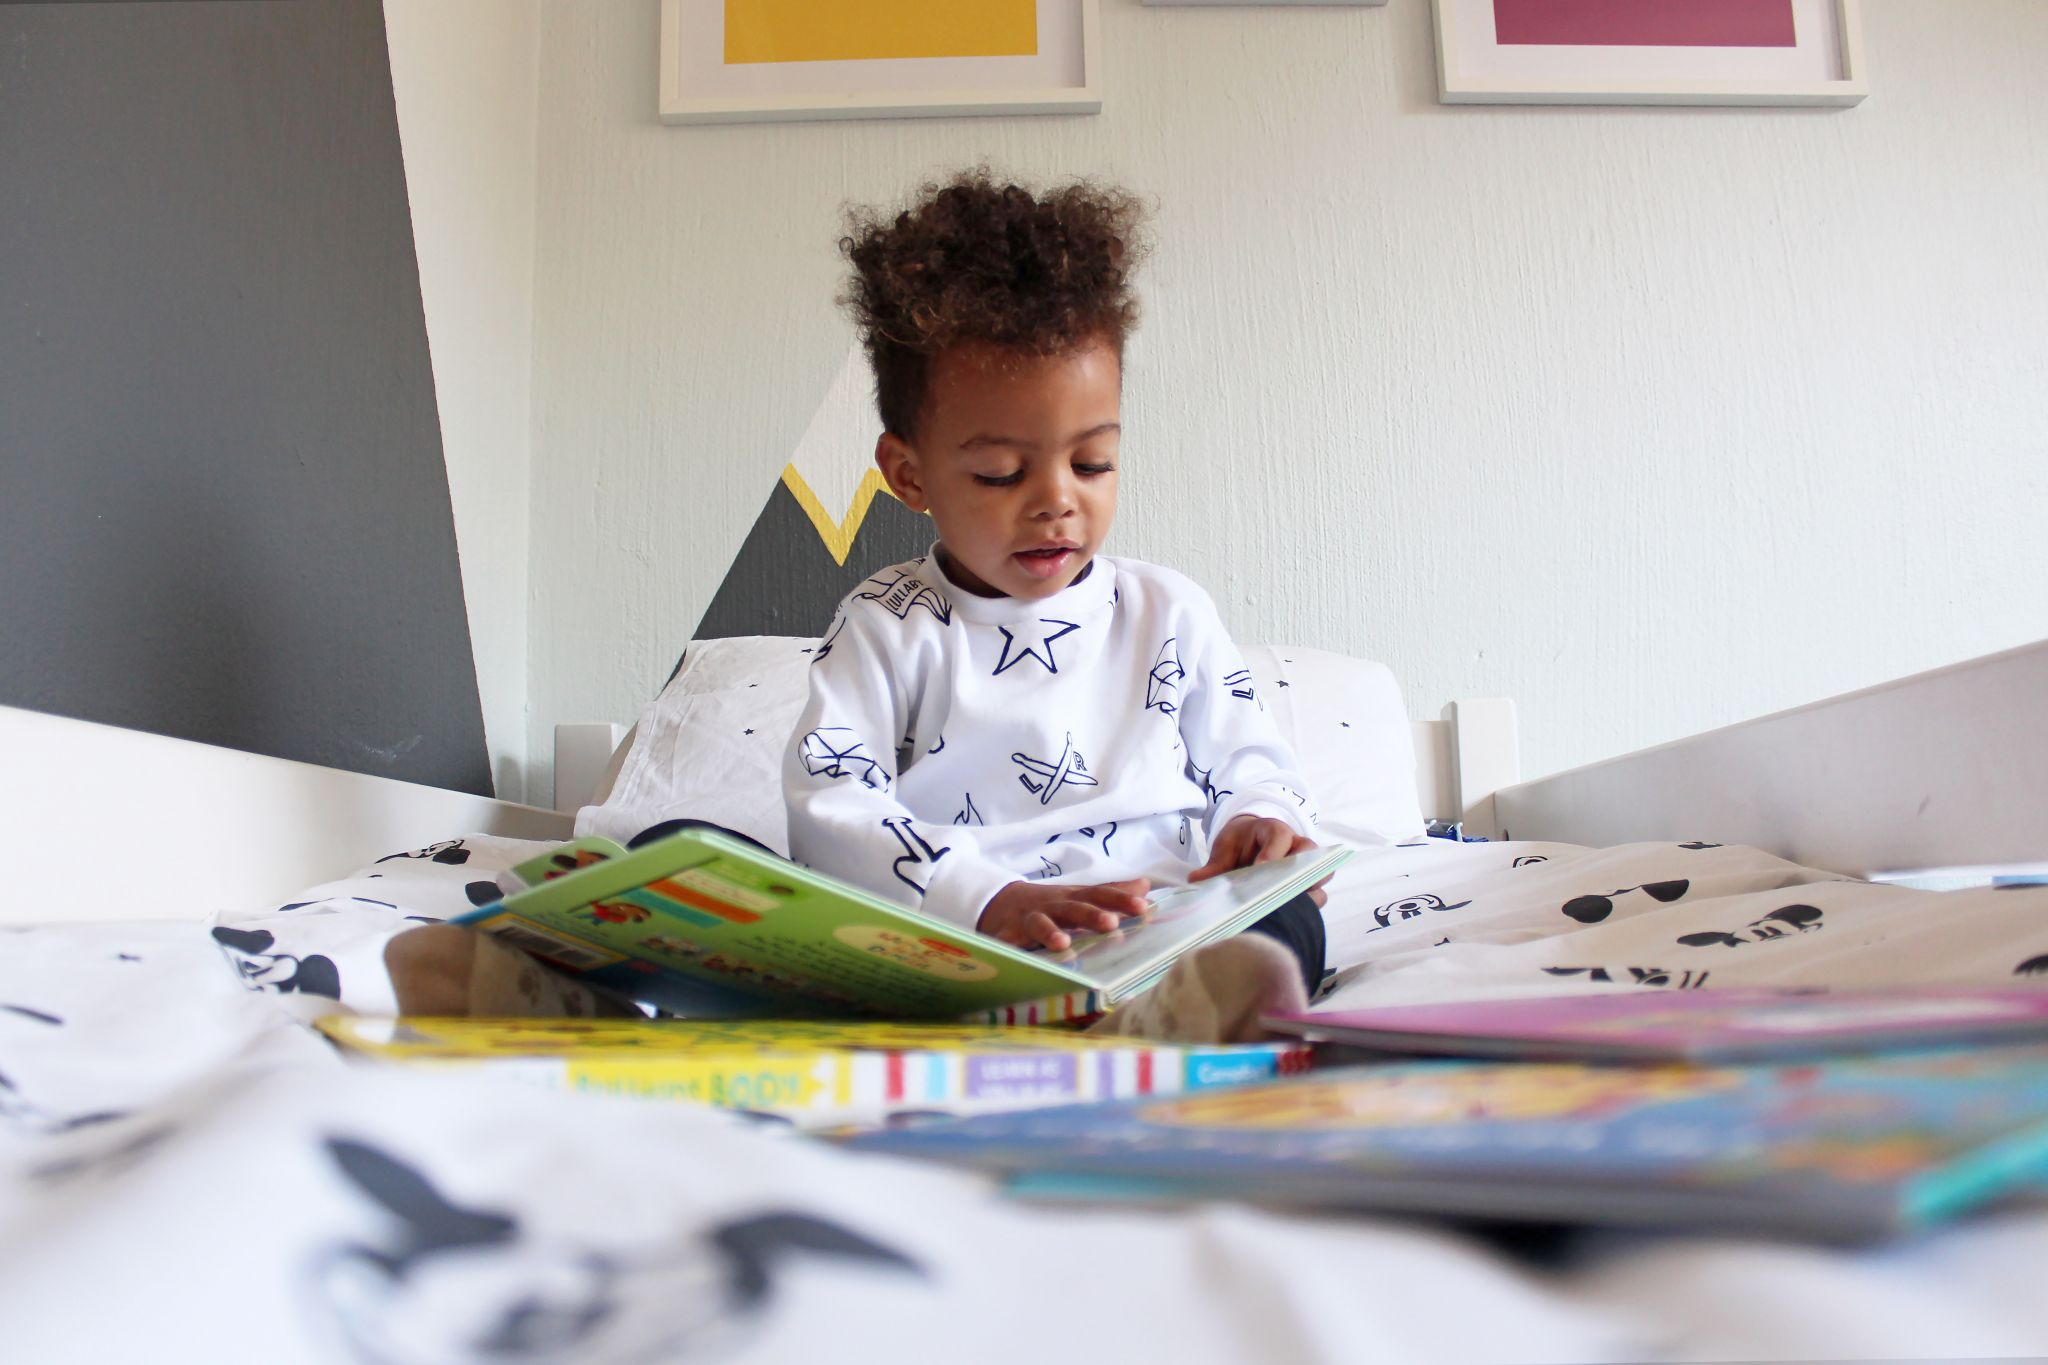 3 New Kids Books to Read Now. Looking for new books to read to your child? Here are three great new books perfect for your toddler.